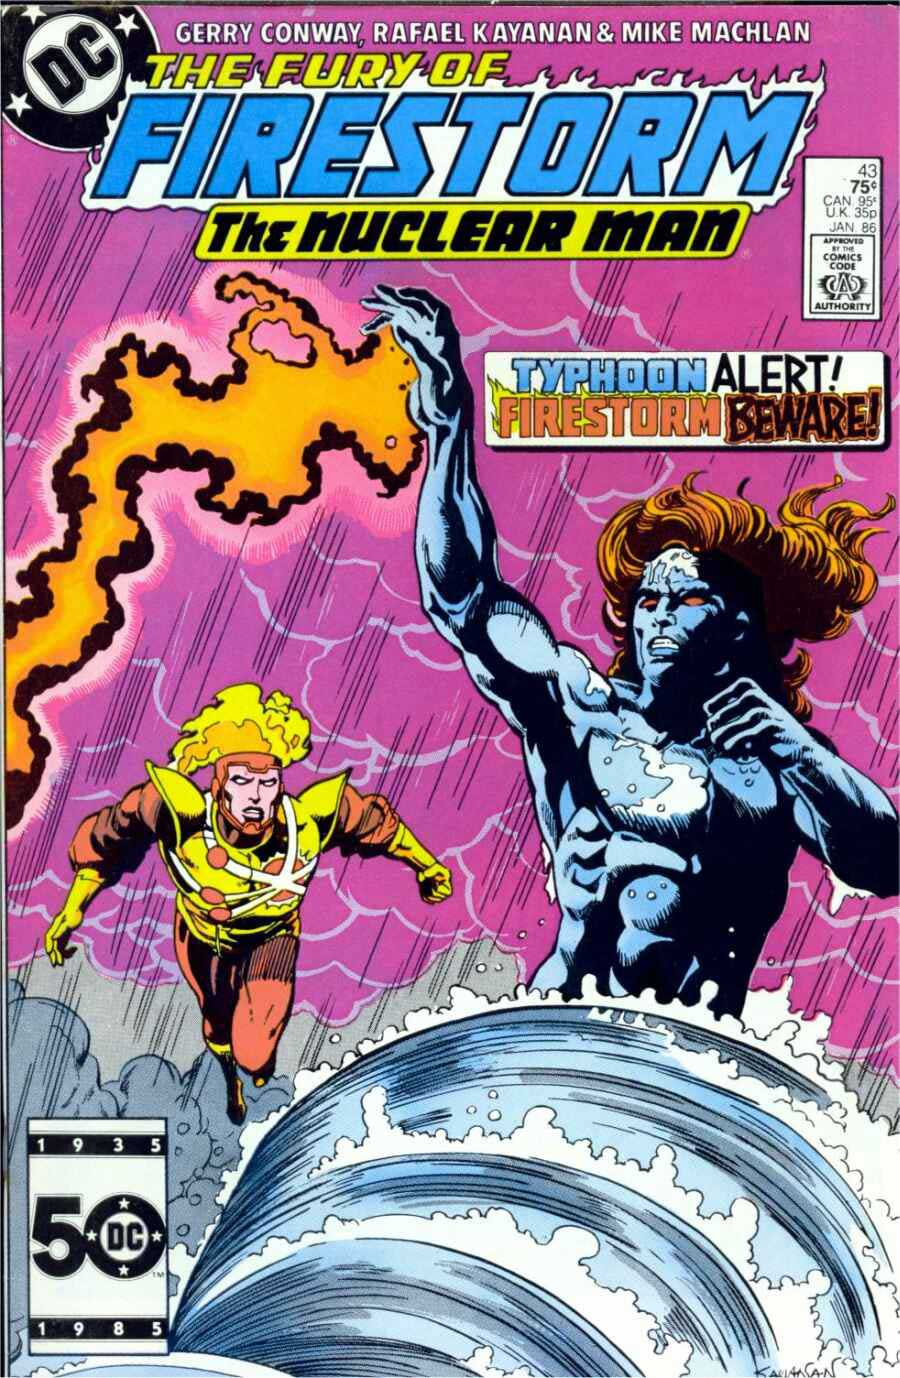 Fury of Firestorm #43 by Gerry Conway, Rafael Kayanan, Mike Machlan; cover by Rafael Kayanan & Dick Giordano